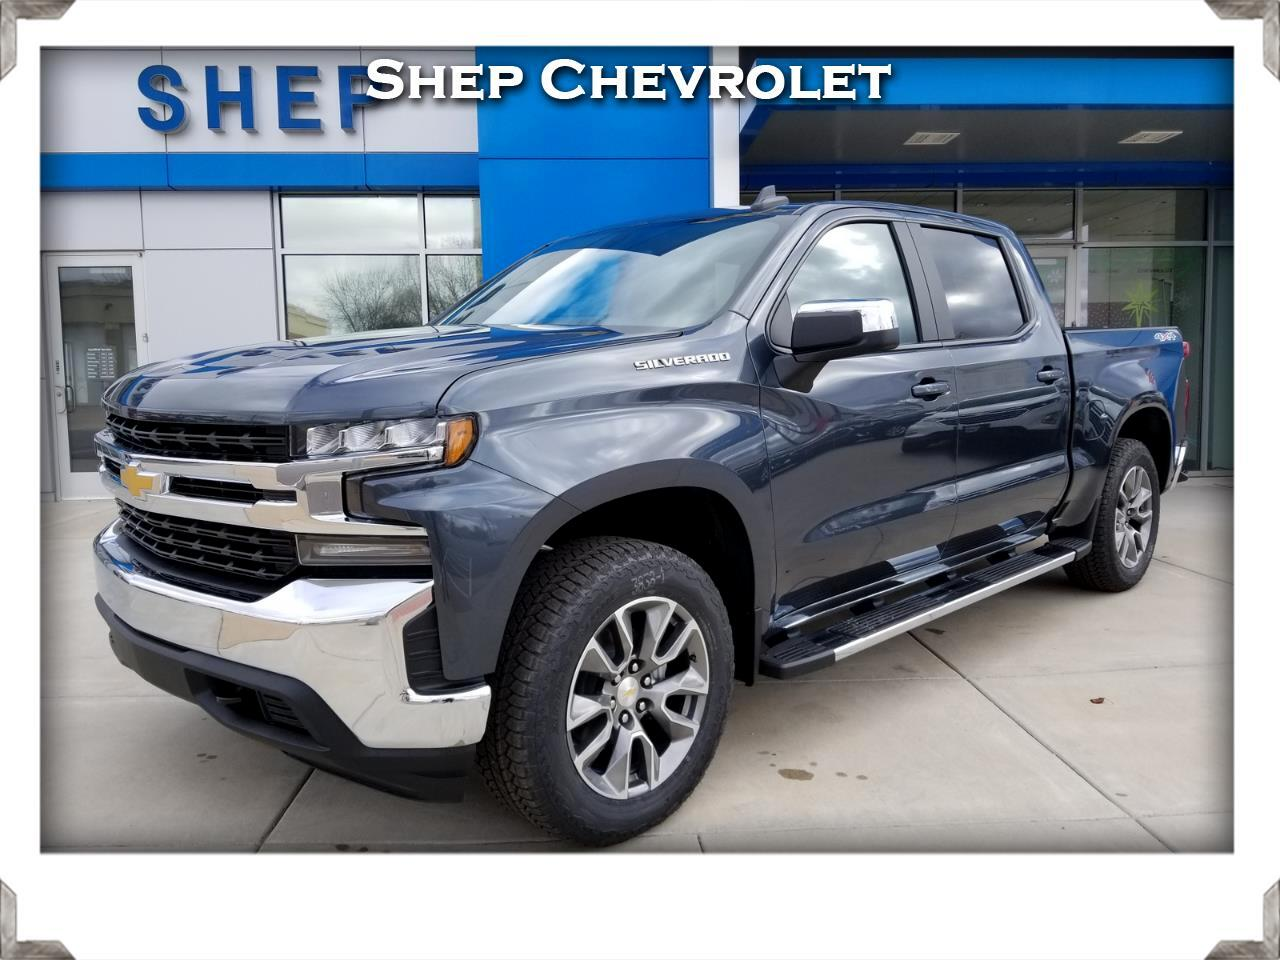 2019 Chevrolet Silverado 1500 4WD LT Crew Cab w/ All Star Edition (DEMO)]